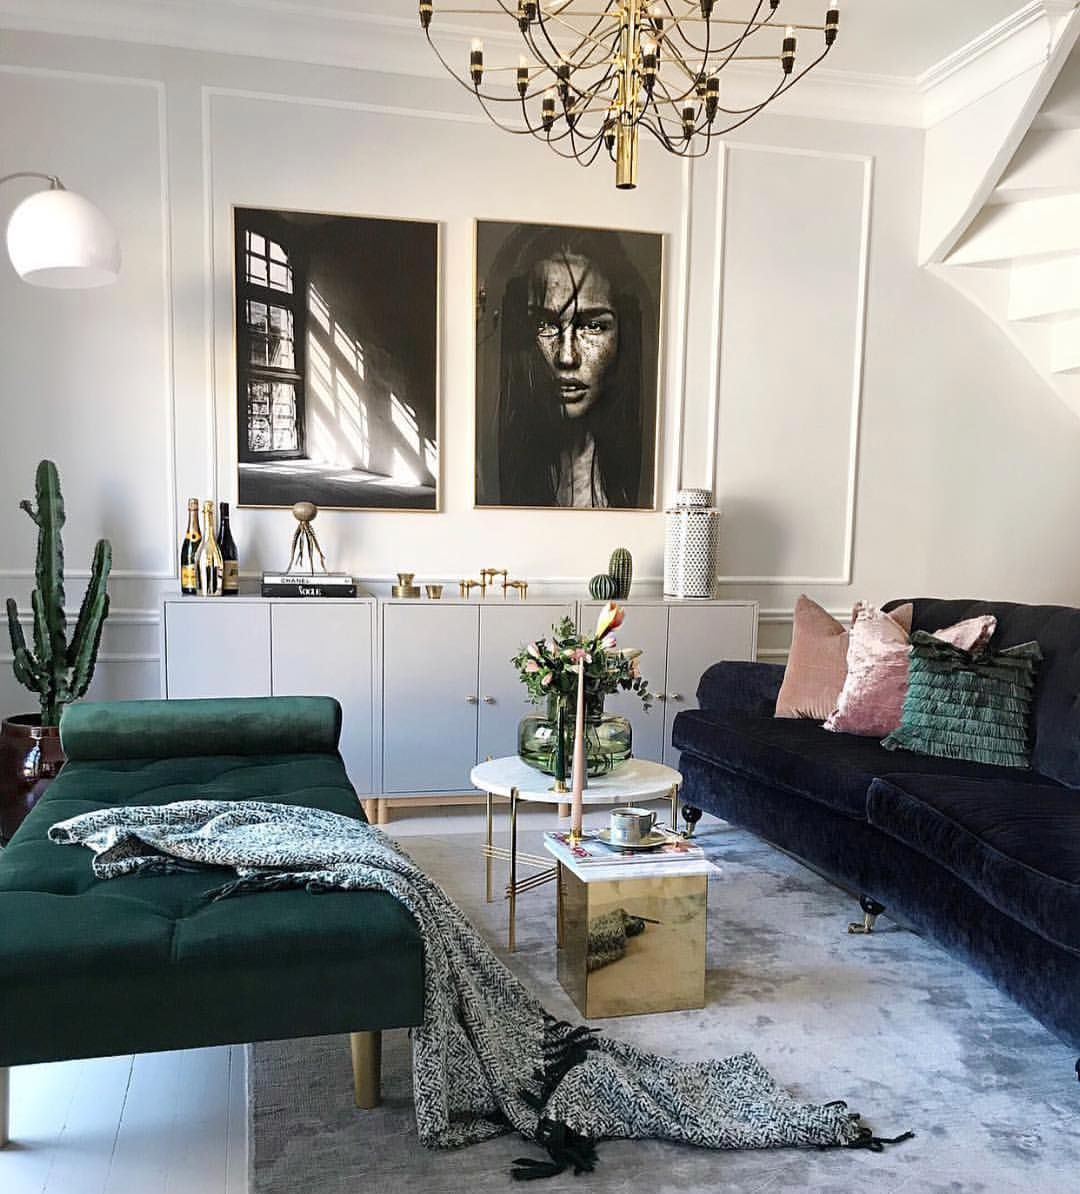 Living Room Makeover Reveal By Decor Gold Designs: Feeling The Jewel Tones With A Touch Of Gold